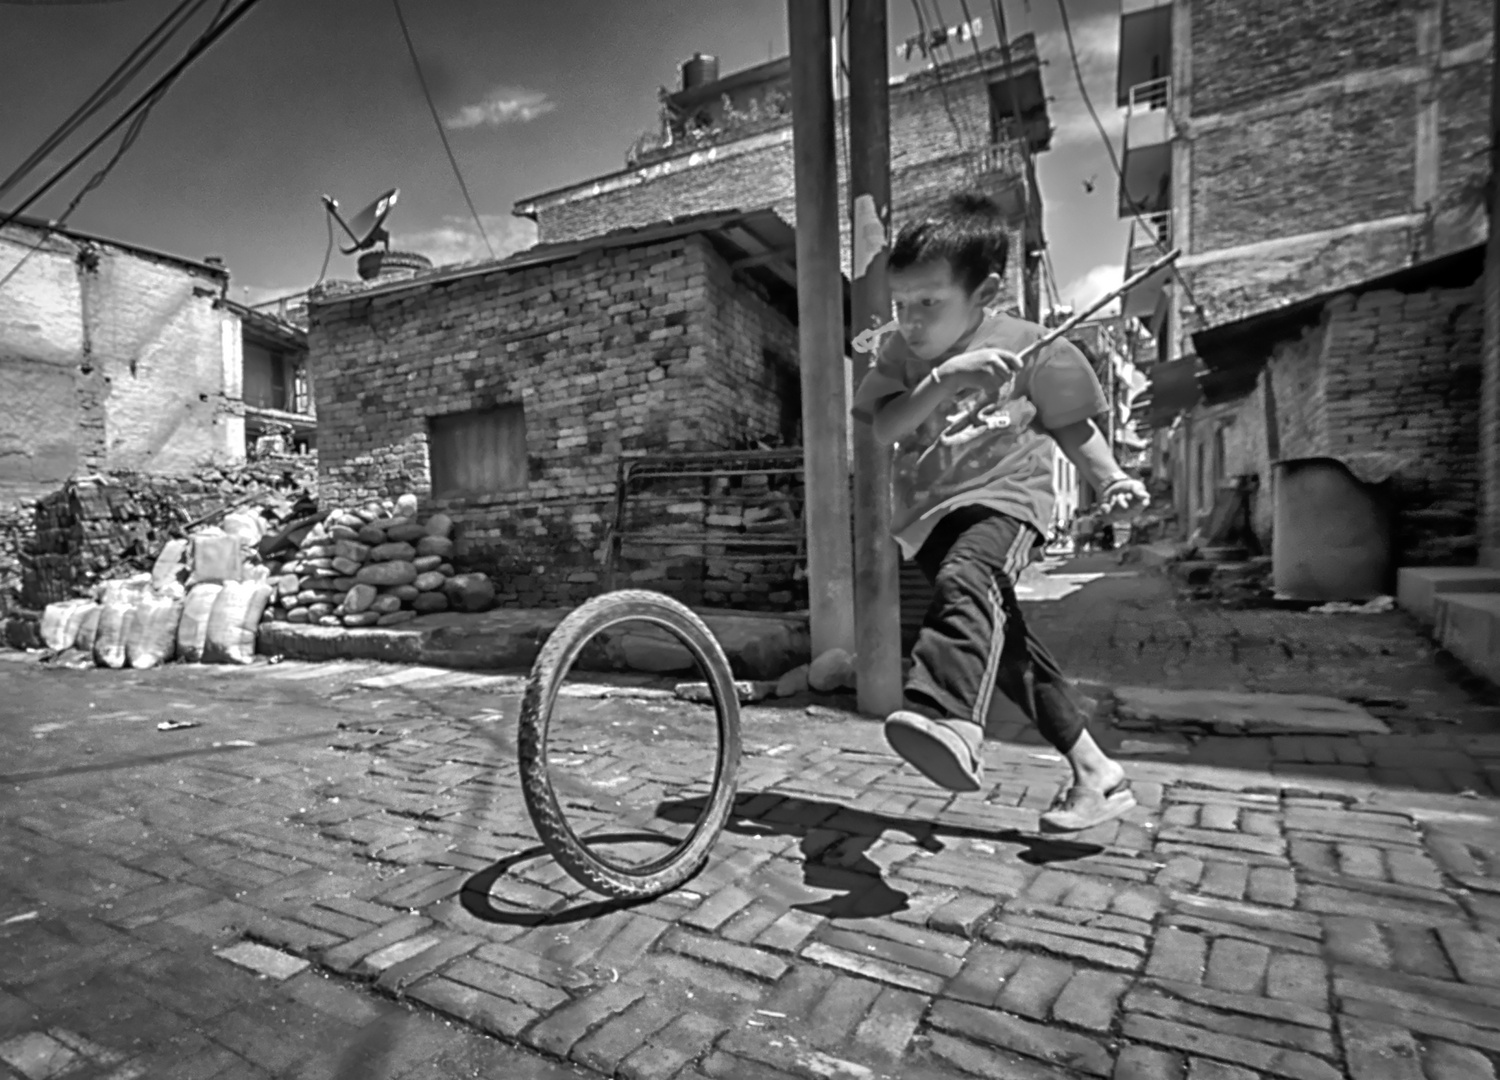 airbornwheel-bw_8140289_openWith_DxO